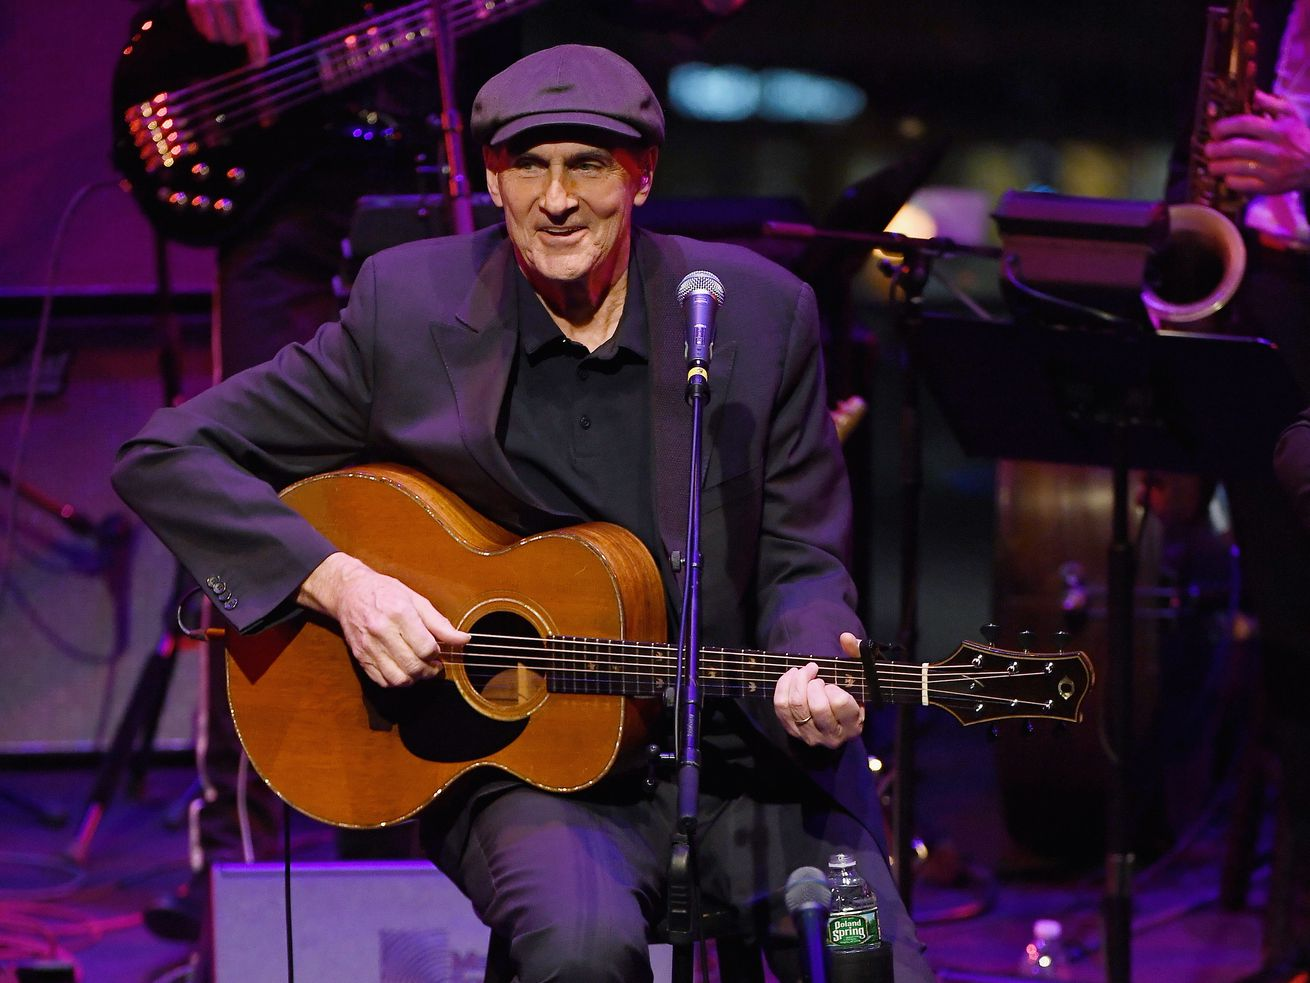 James Taylor performs at Jazz at Lincoln Center in 2019 in New York City.